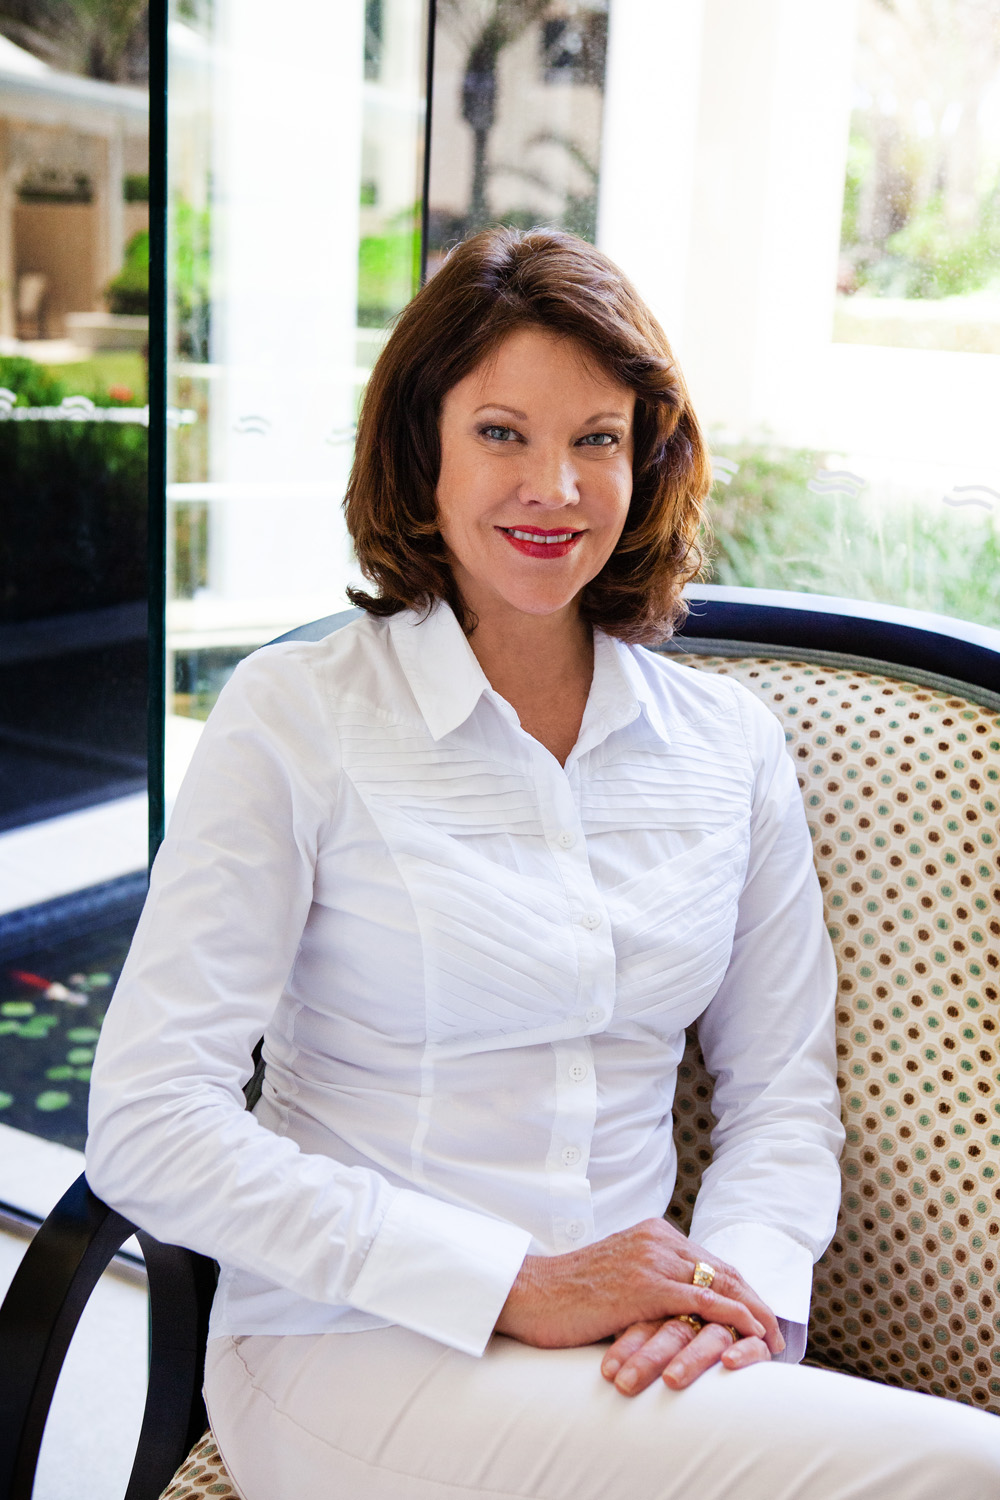 Business woman in a white shirt, working, gold coast head shots, gold coast corporate photography, gold coast business photography, gold coast business community, gold coast business woman, gold coast business woman photography, lana noir, @lananoir, gold coast industry professionals, best photographer gold coast, robina photographer, broadbeach photographer